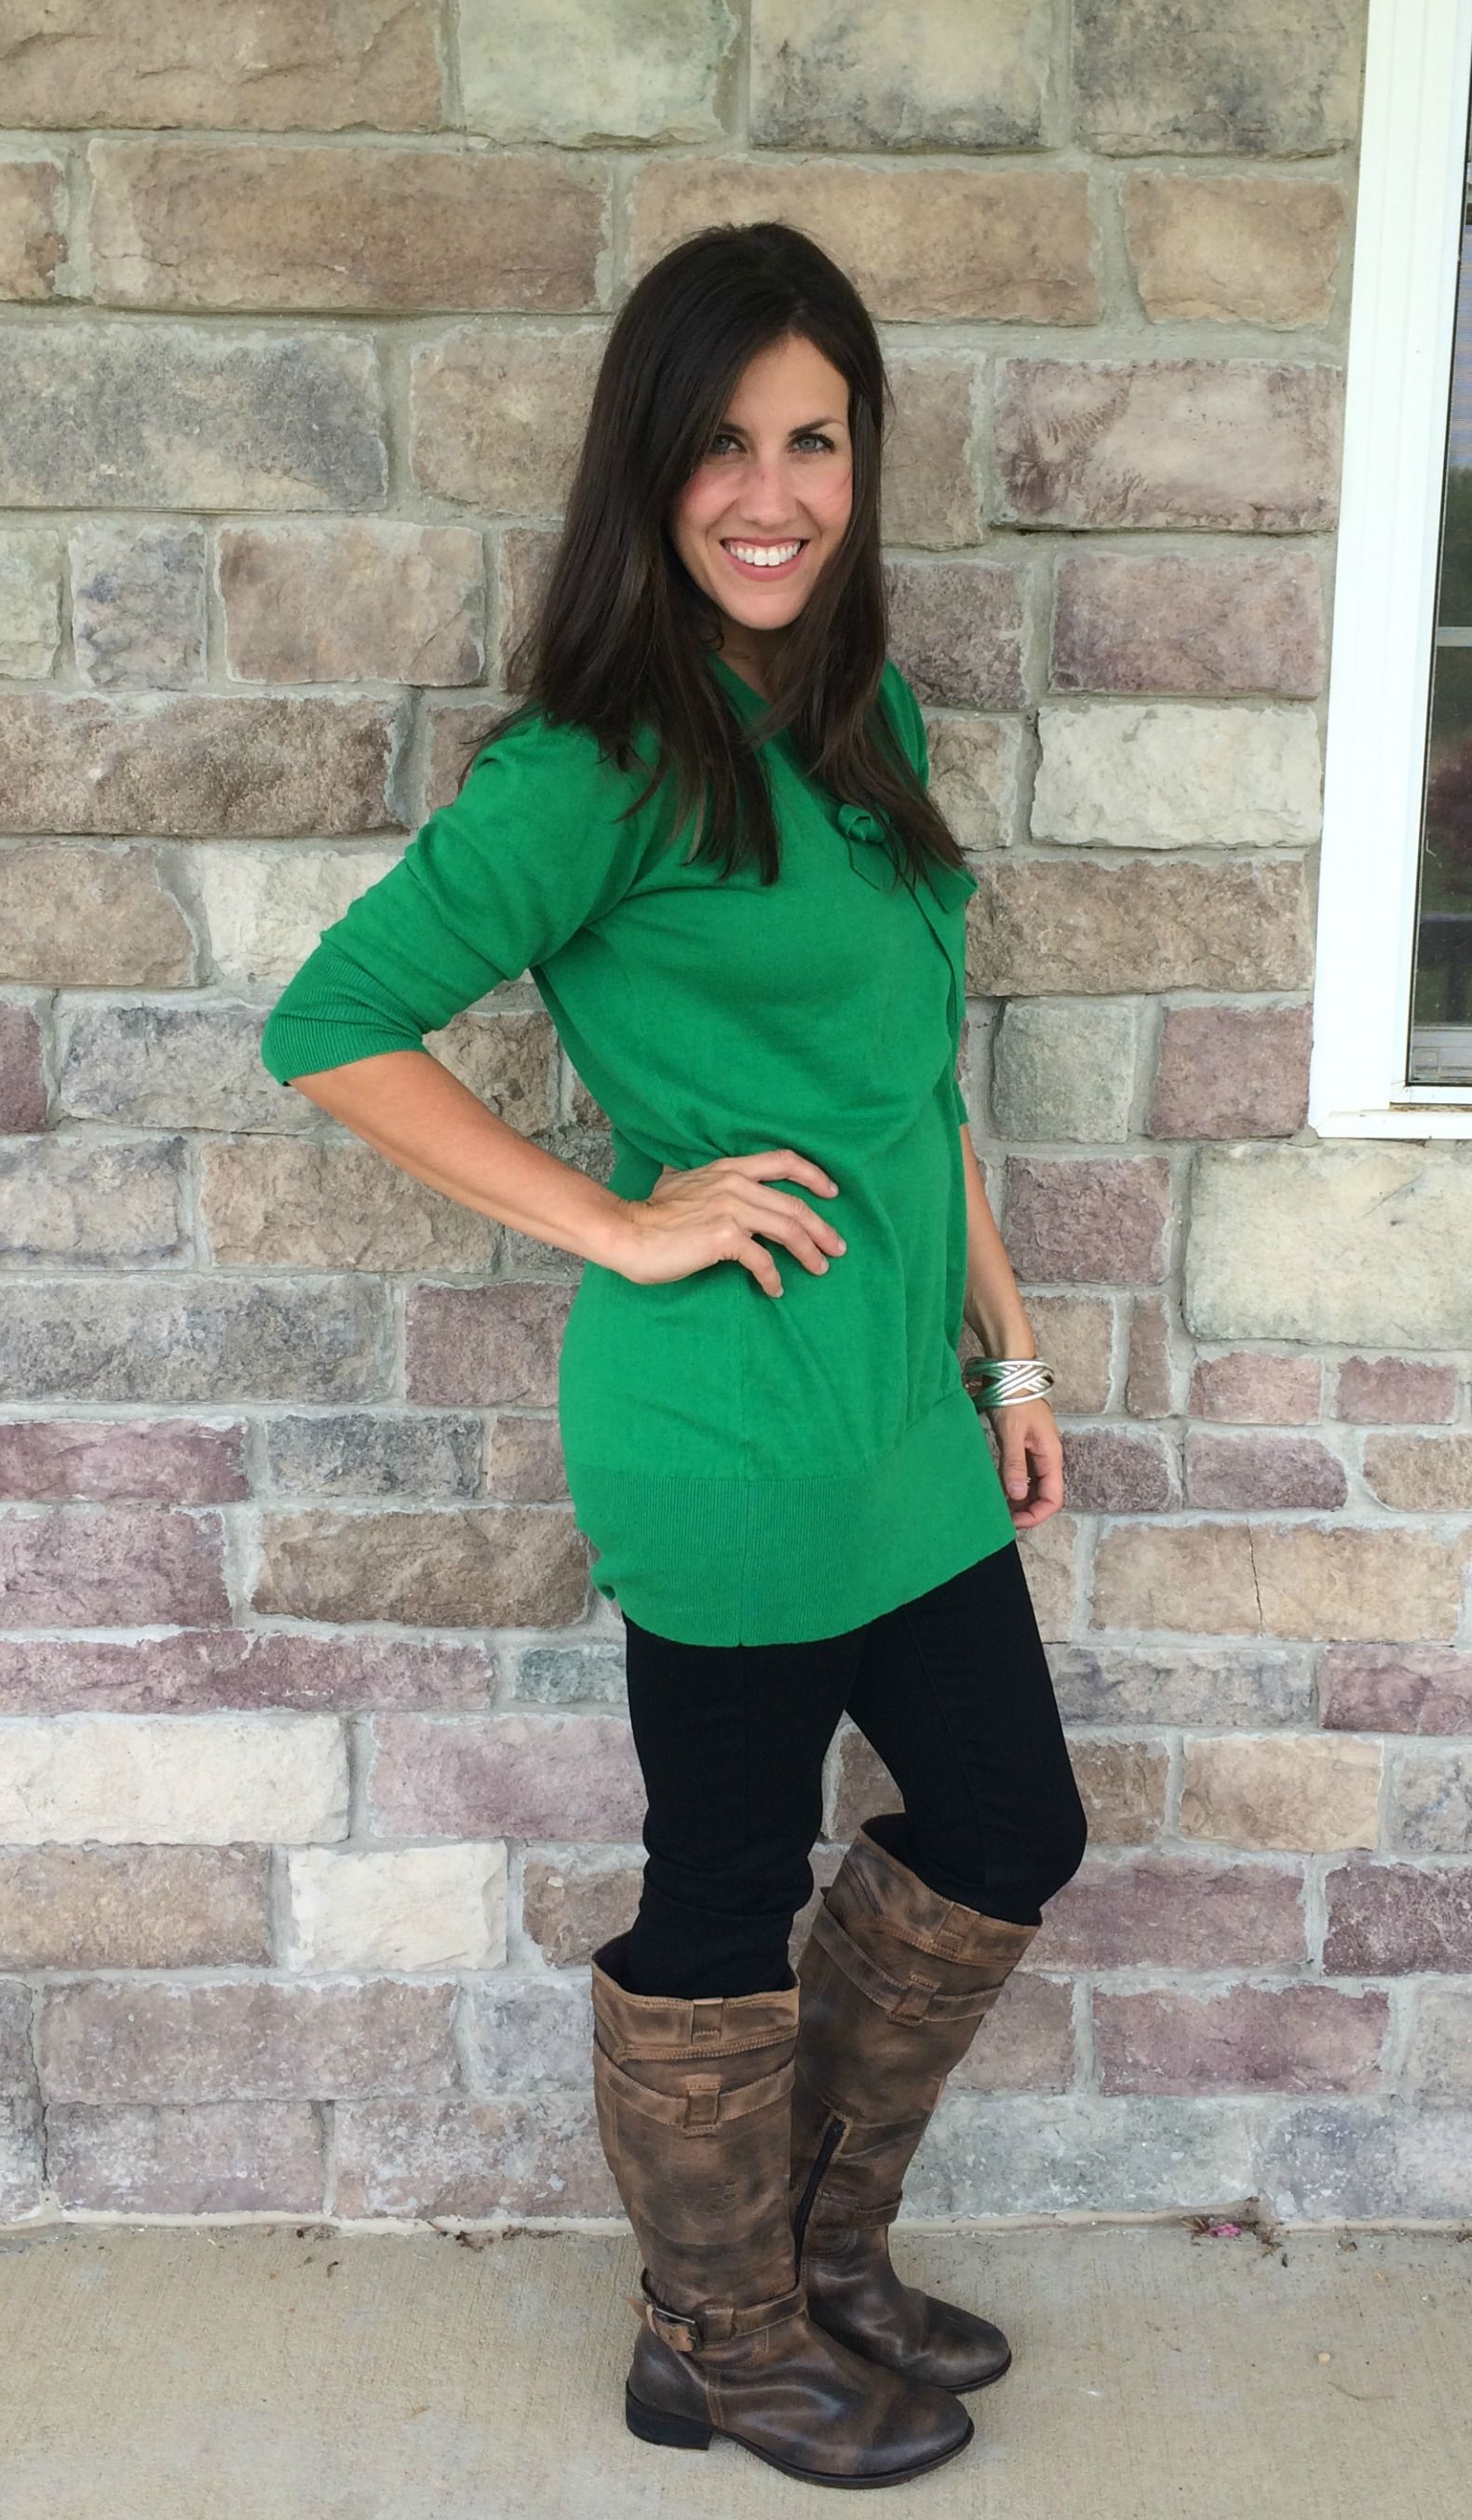 Emerald Green Tunic Sweater, Black Jeggings, Brown Boots outfit ...